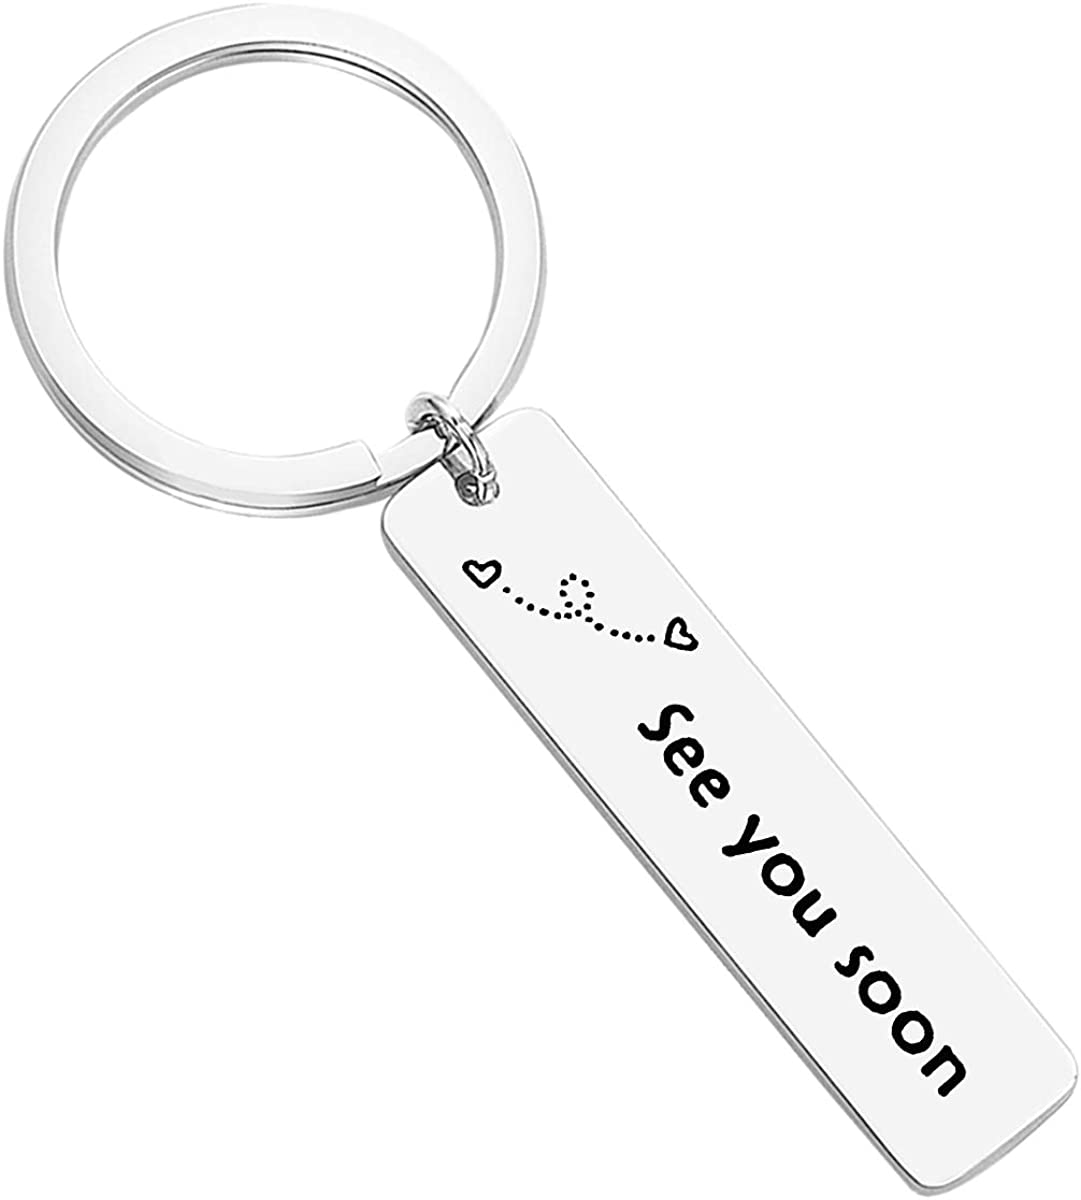 Couple Keyrings Scooter Keychains Long Distance Gifts, Set of 2 Gifts BFF keychains Boyfriend girlfriend Gifts Best friend Keychain